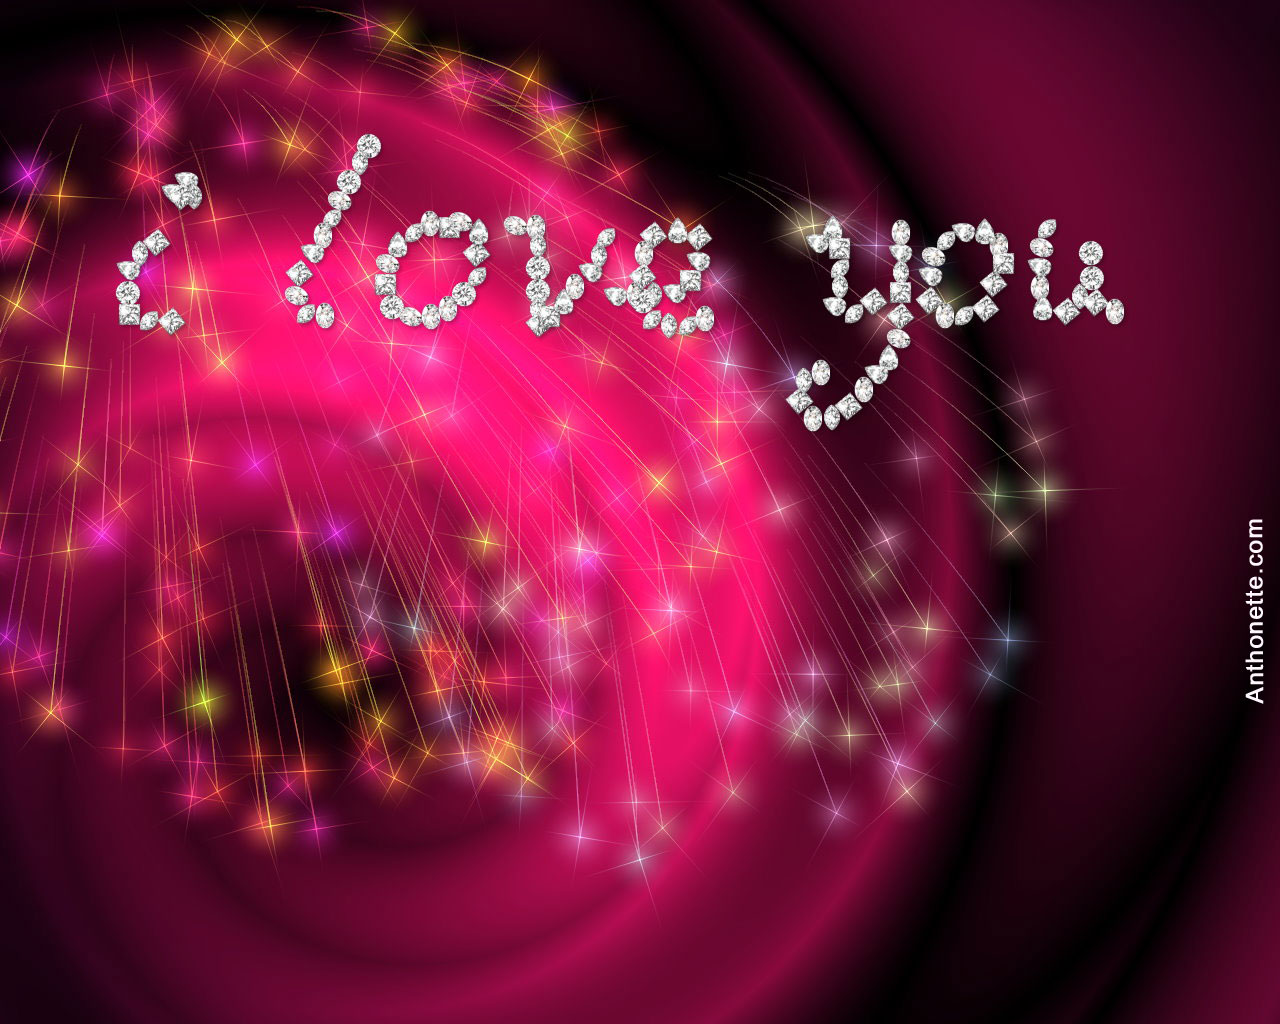 Love Wallpaper With My Name : Wallpaper i love you papel de Parede #2 ~ Links da WEB